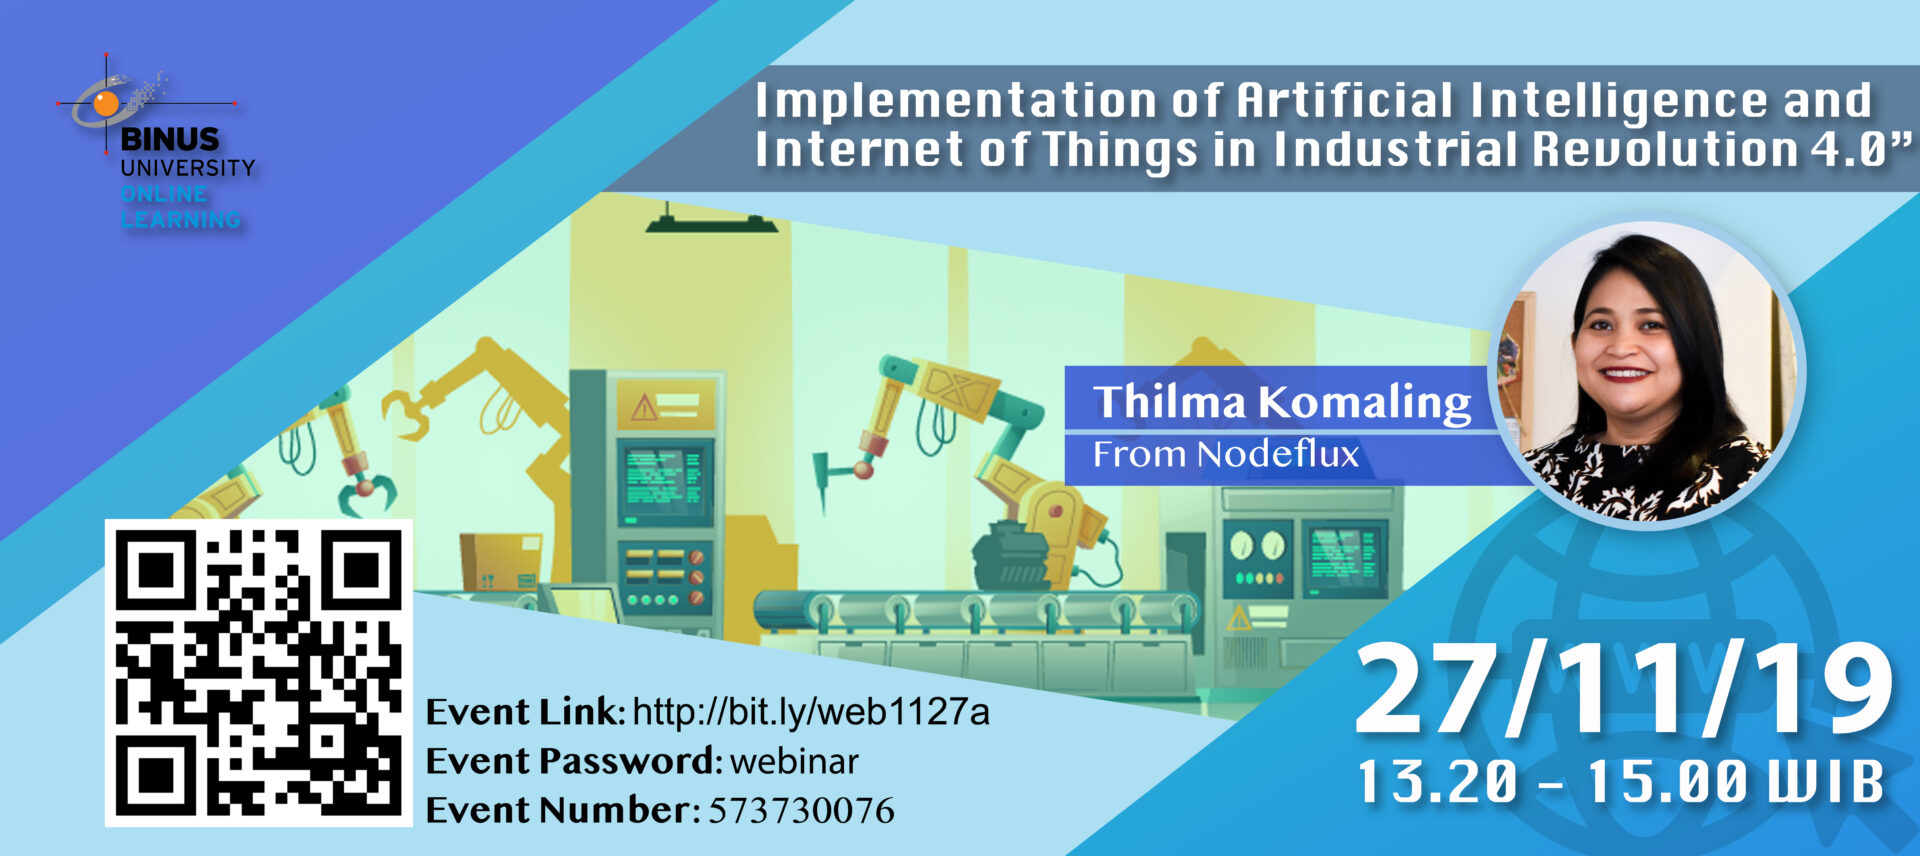 Implementation of Artificial Intelligence and Internet of Things in Industrial Revolution 4.0 Gallery